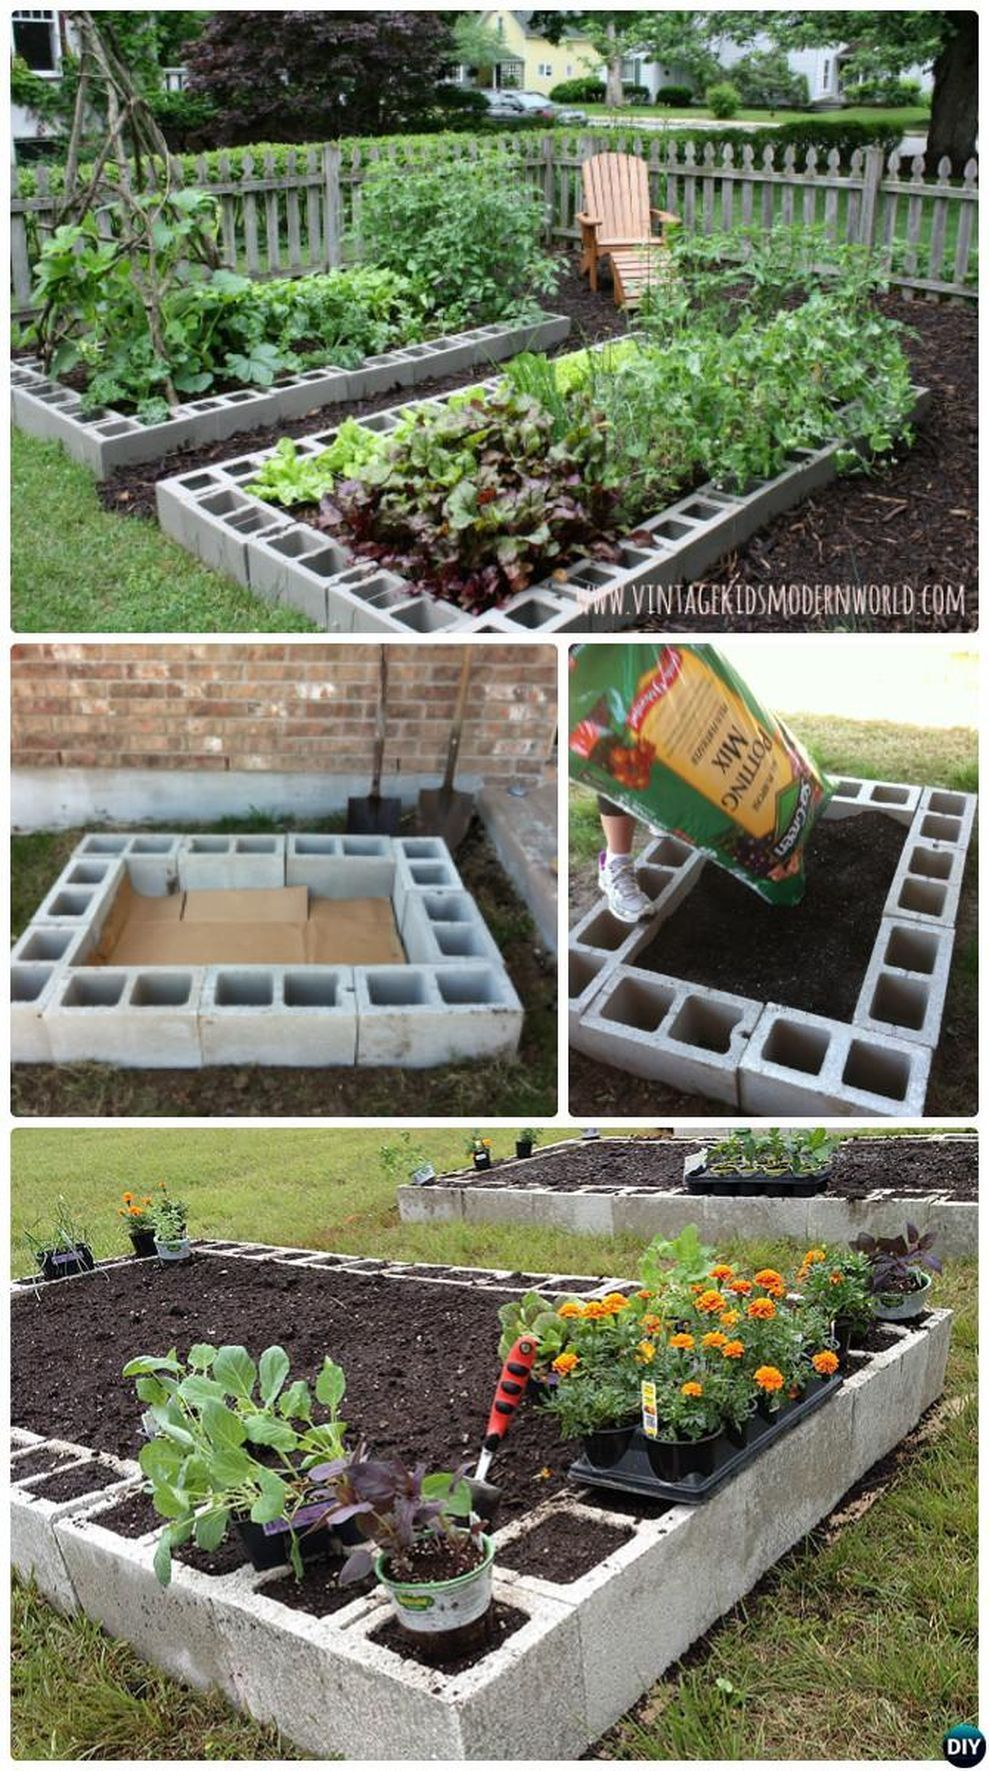 62 Affordable Backyard Vegetable Garden Designs Ideas ... on cinder blocks raised garden, raised bed flower garden design, veggie garden, raised garden planter boxes, raised backyard landscaping, raised backyard design, raised bed garden layouts, raised bed planting layout guides, raised backyard playground, raised vegetable beds, raised flower bed design ideas, raised garden layout plans, raised garden ideas,